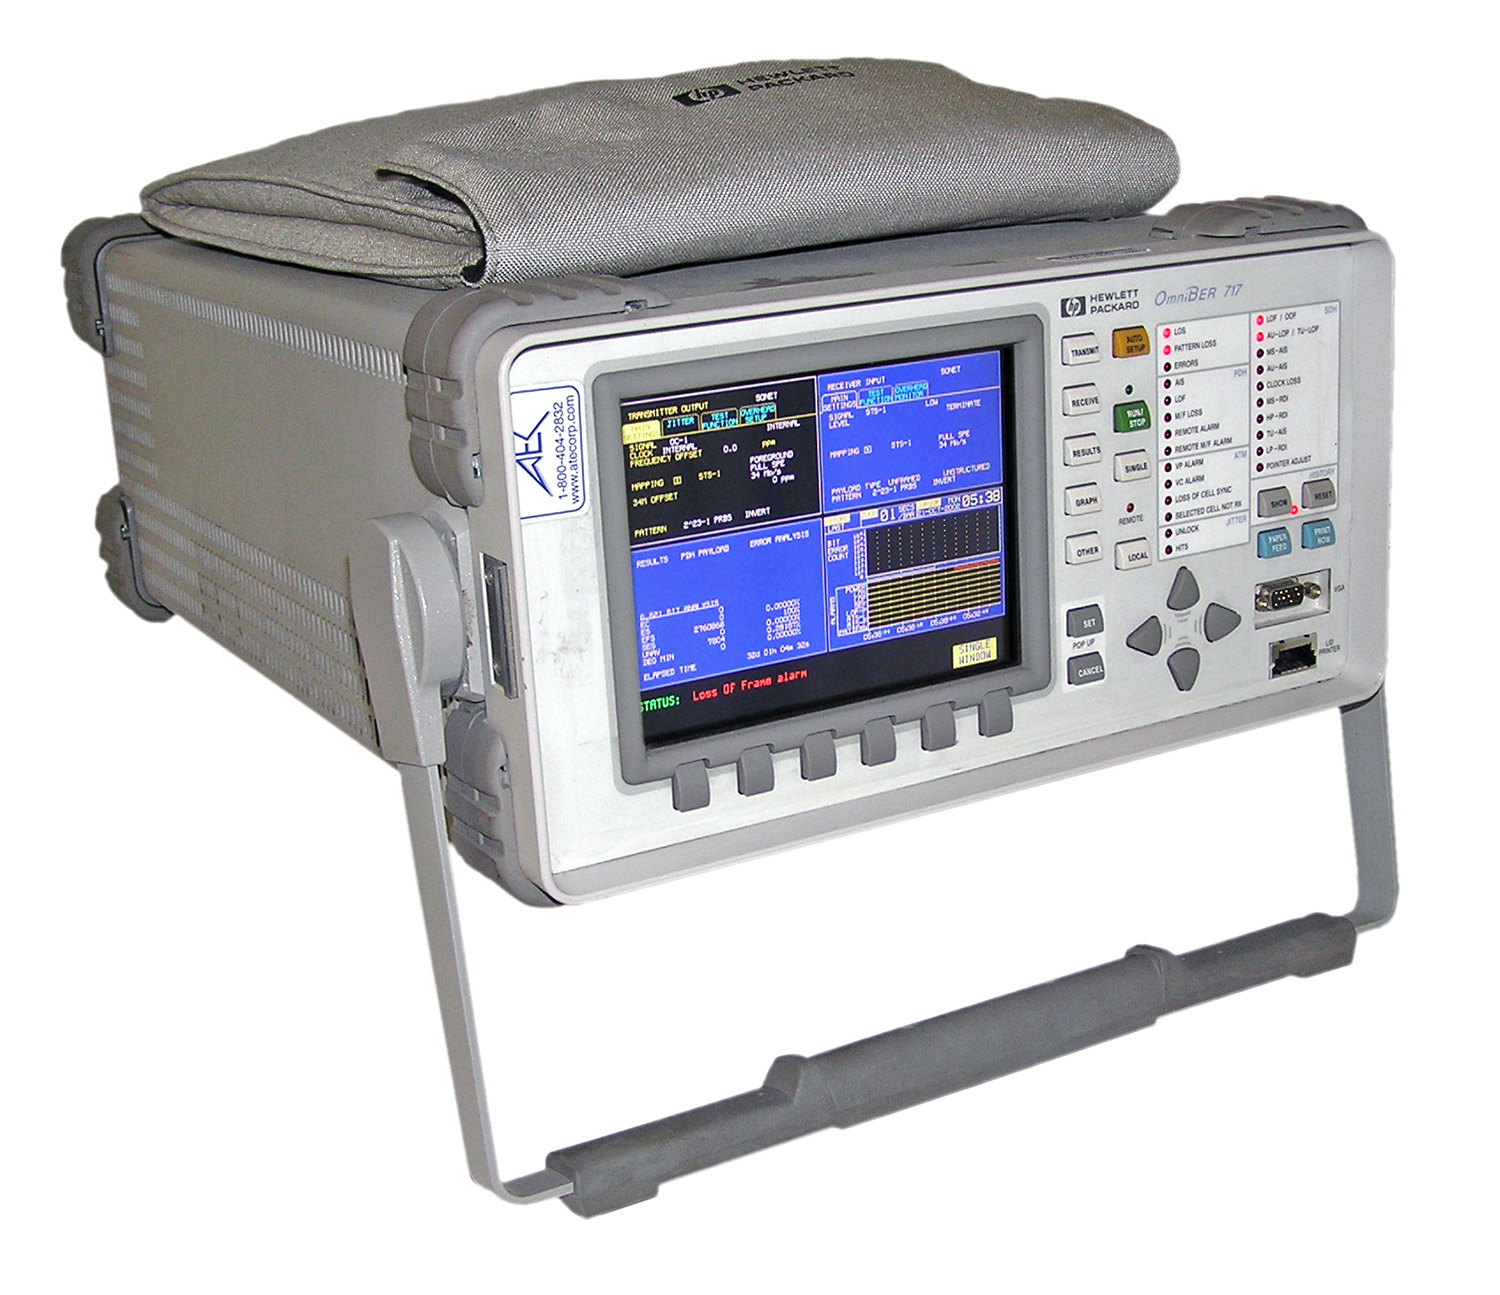 Keysight 37717C Performance Analyzer